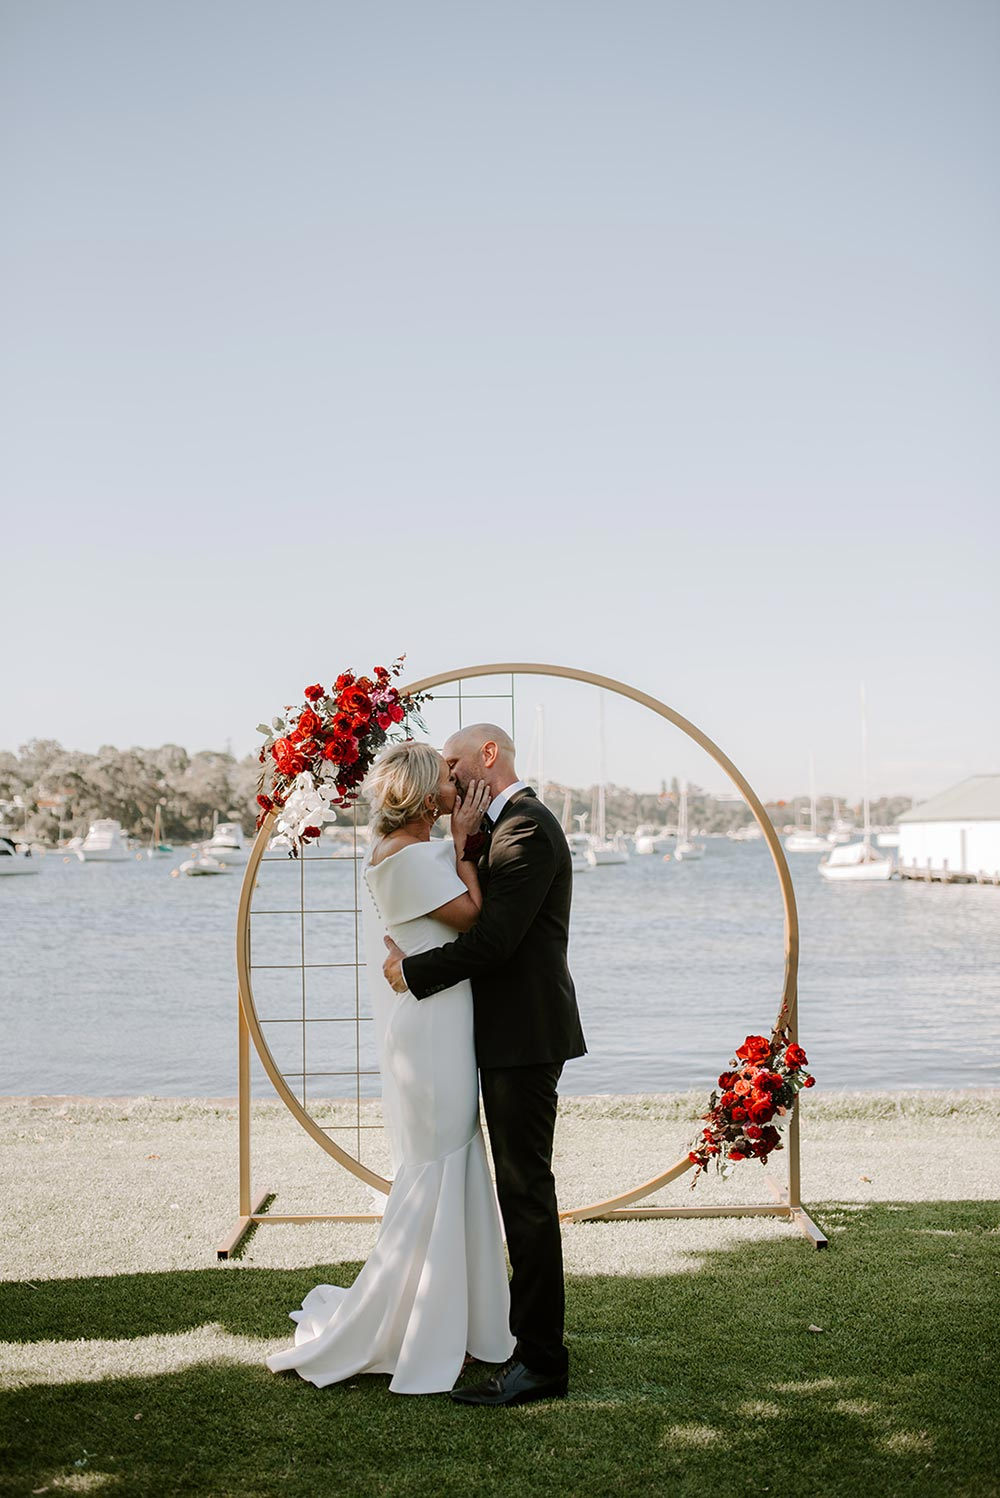 modern circular wedding ceremony backdrop with red flowers